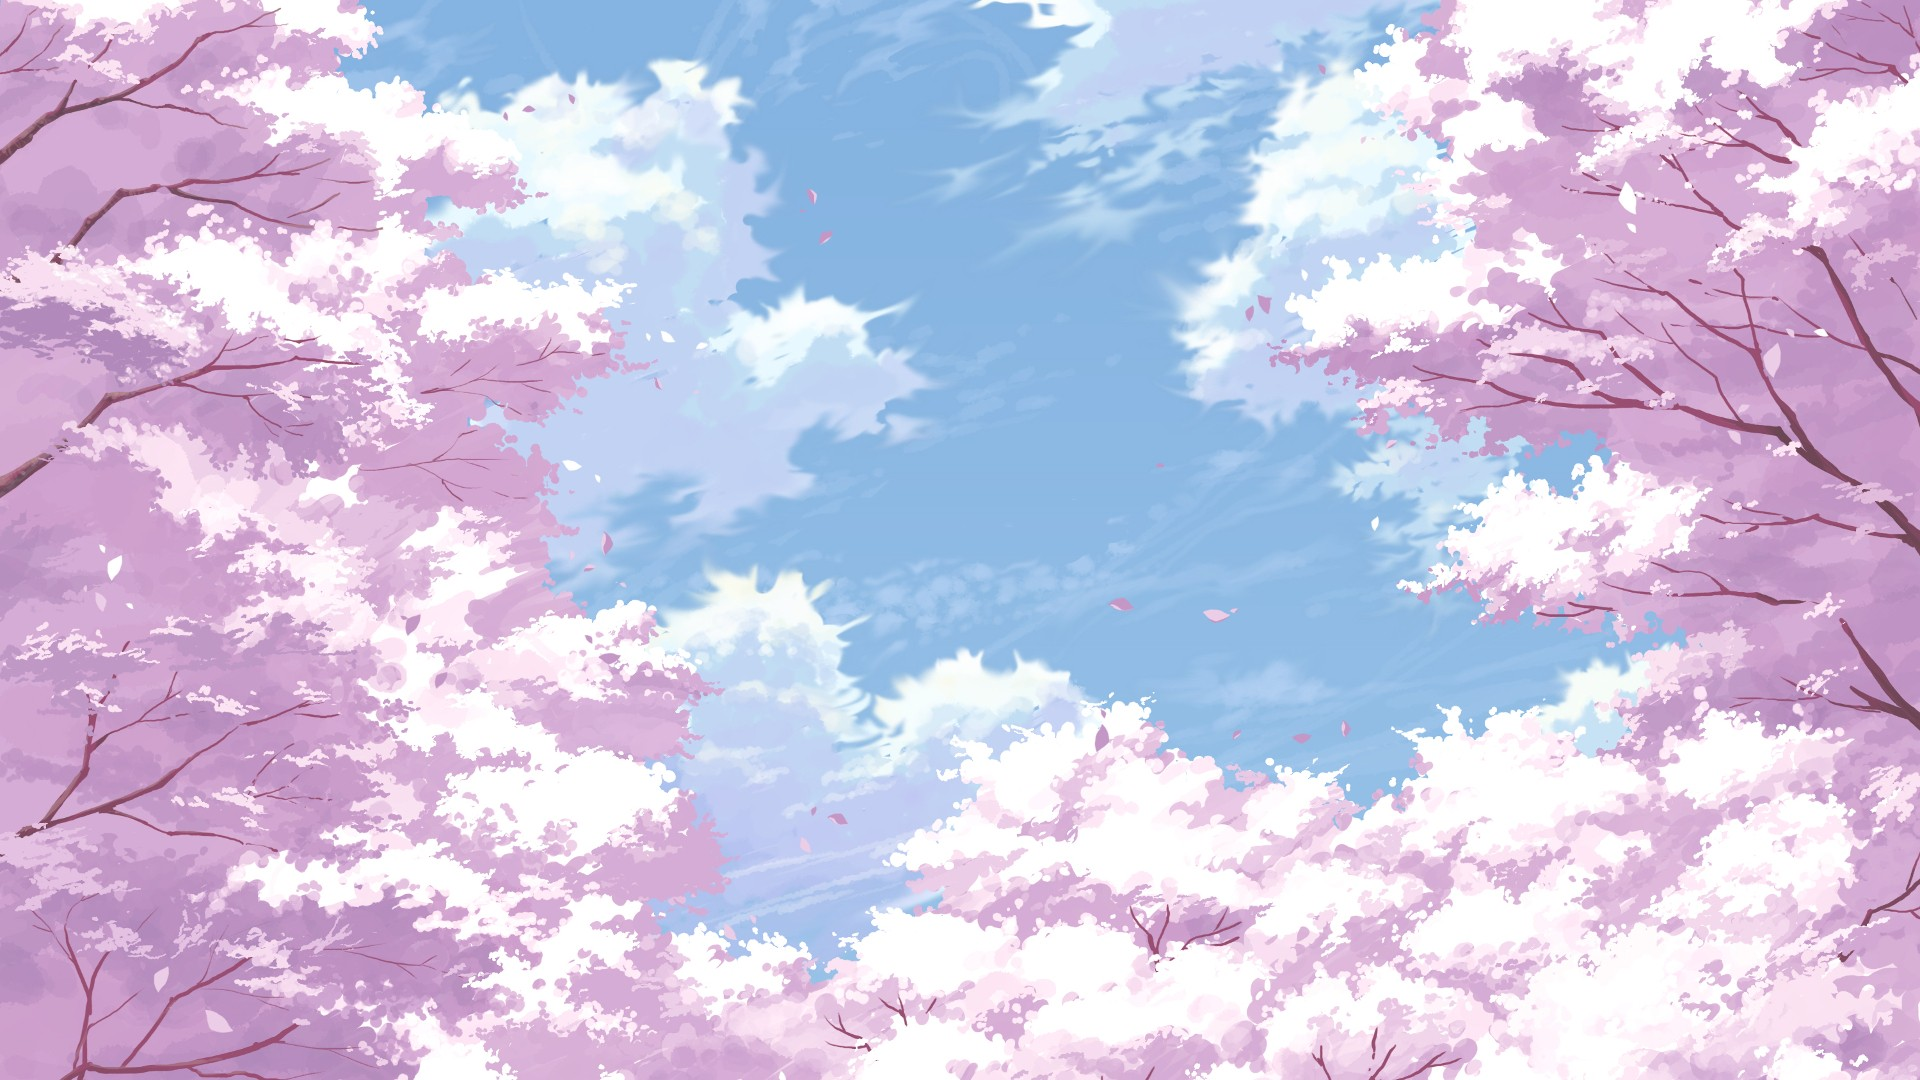 Image Cherry Blossom Flowers Painting Pink 1080p Wallpaperg